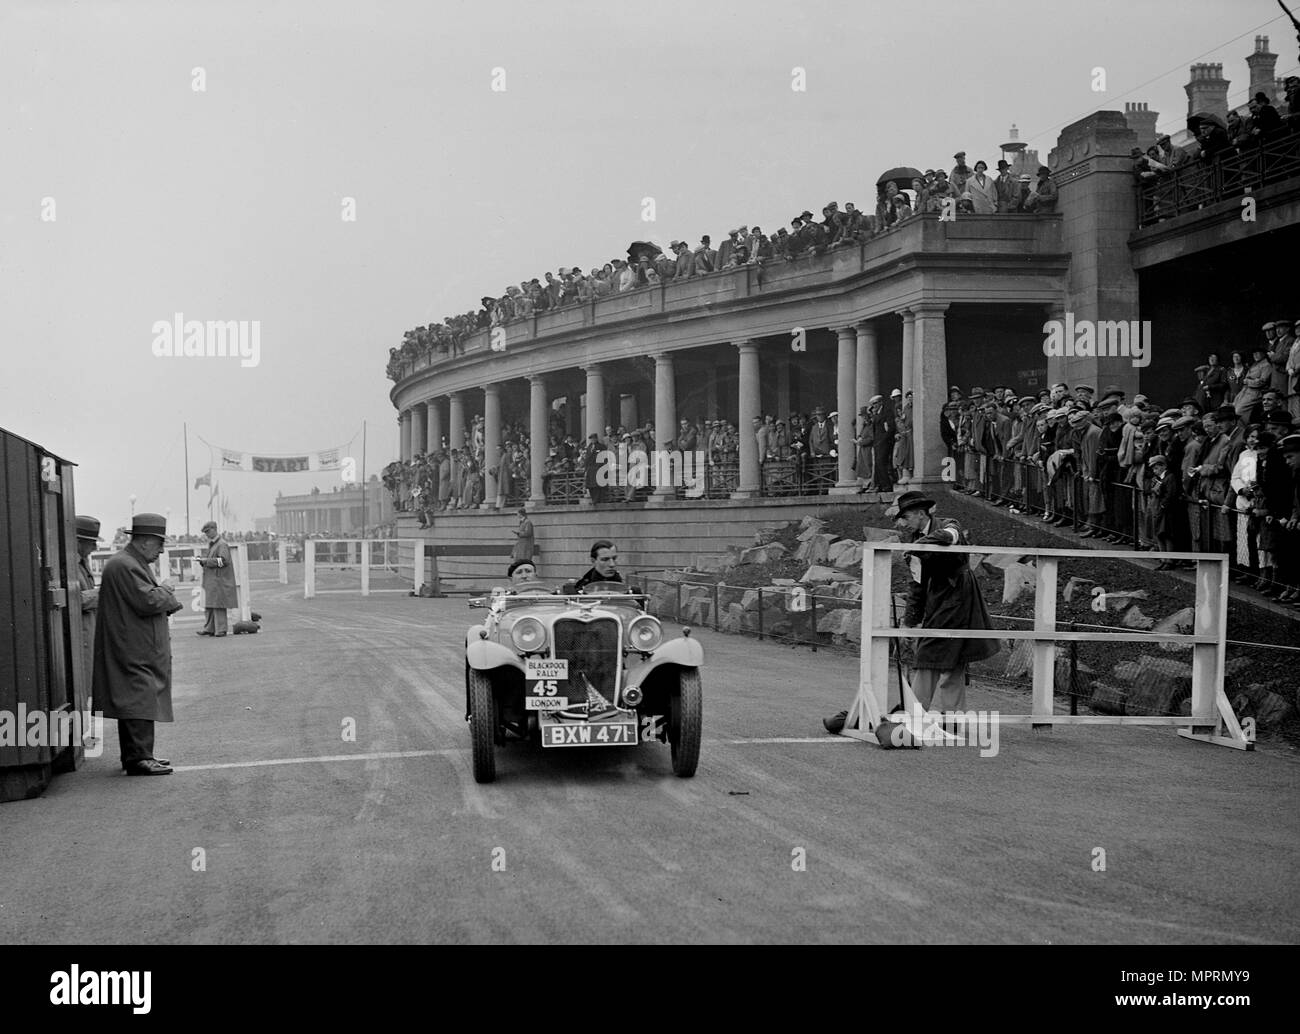 Singer of DE Harris competing in the Blackpool Rally, 1936. Artist: Bill Brunell. - Stock Image